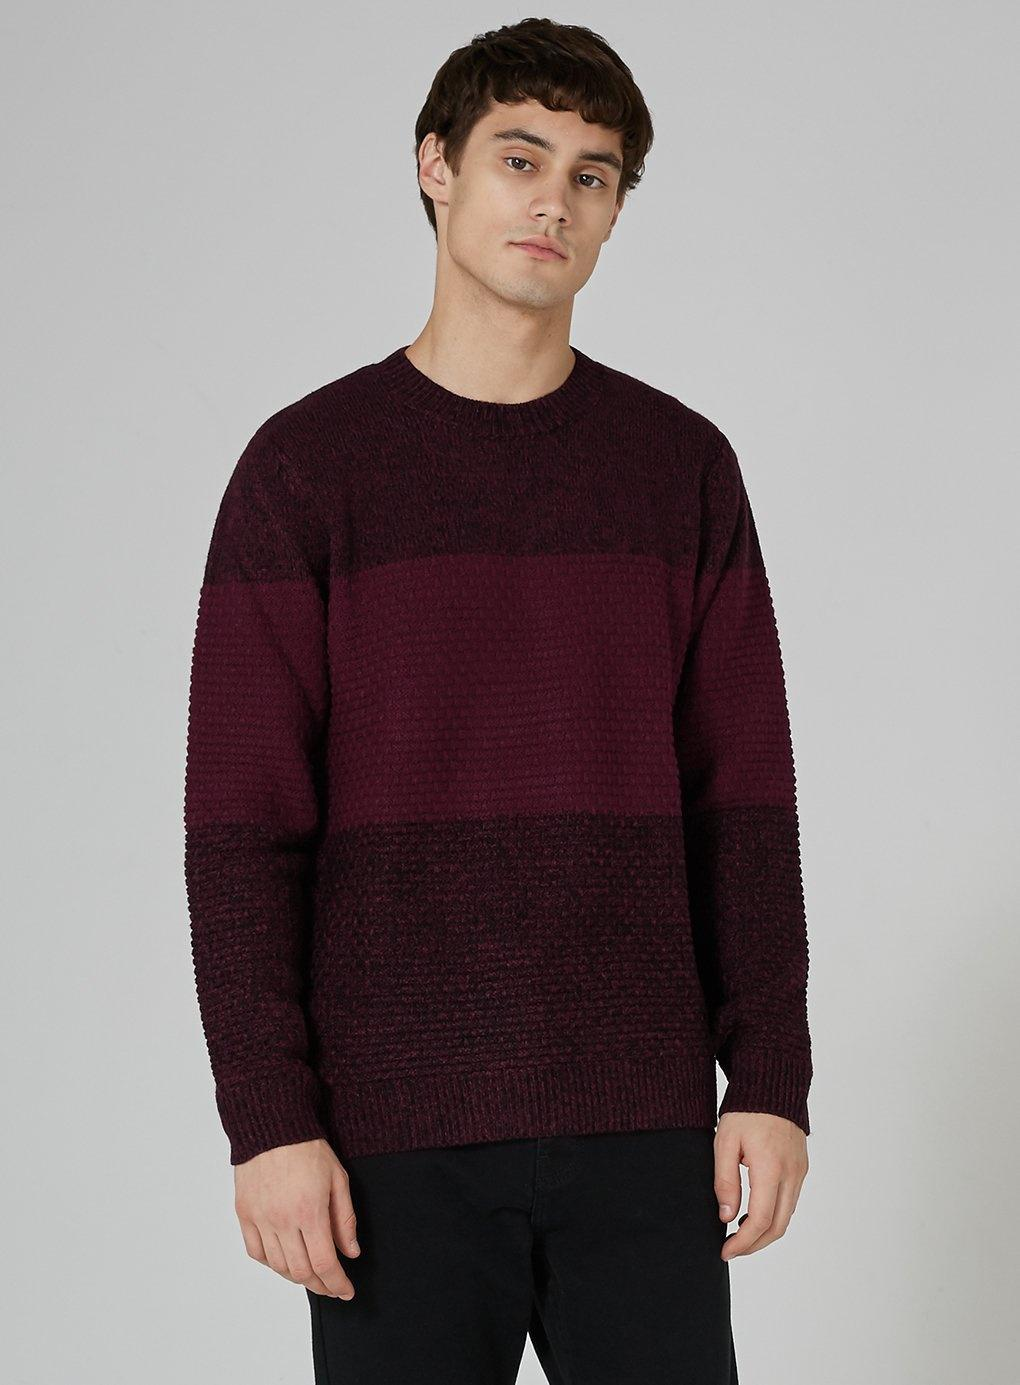 TOPMAN Synthetic Burgundy And Black Panel Jumper in Red for Men